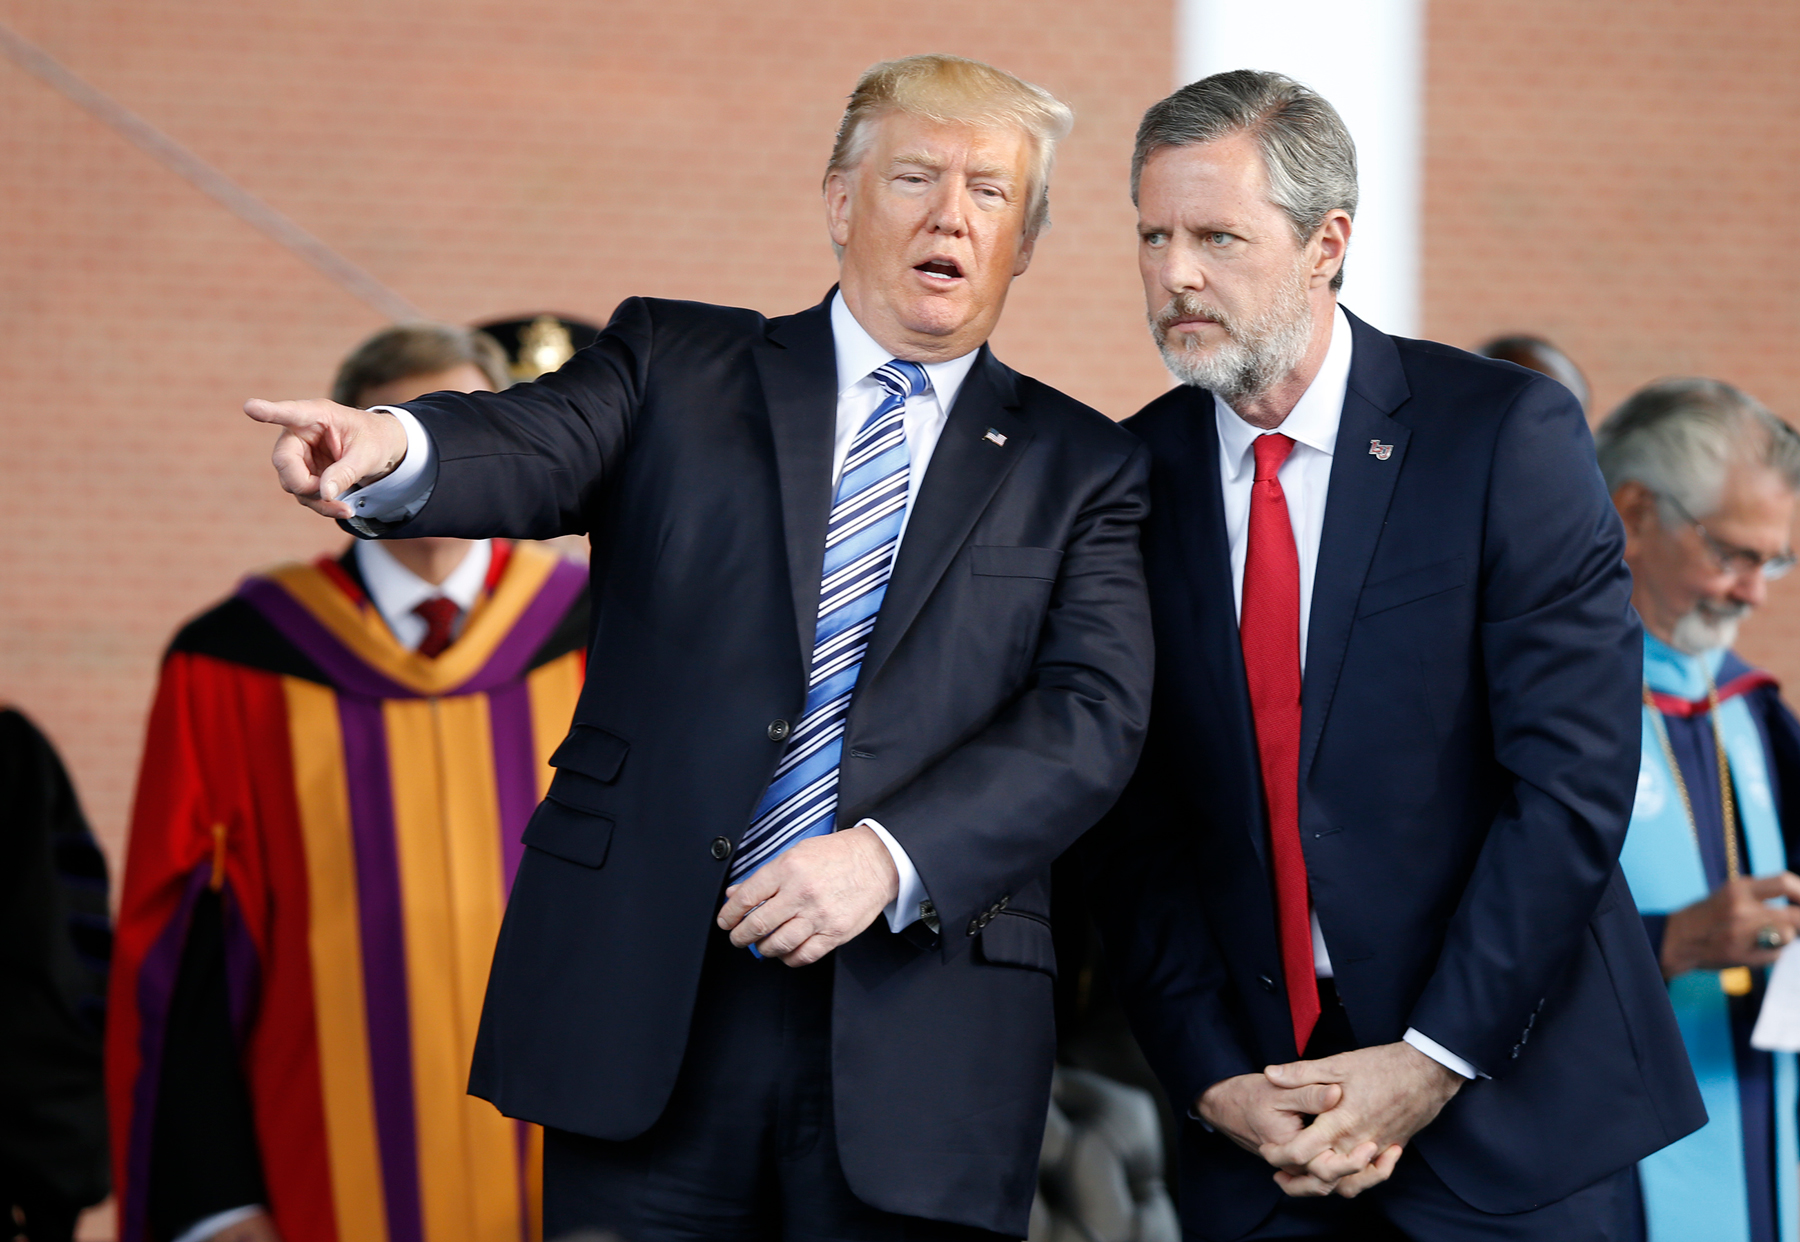 "FILE - In this May 13, 2017 file photo, President Donald Trump gestures as he stands with Liberty University president, Jerry Falwell Jr., right, during commencement ceremonies at the school in Lynchburg, Va. Falwell Jr., said in an interview that he and President Donald Trump are in regular communication but described himself as ""not a spiritual adviser, not a counselor. I'm just his friend."" (AP Photo/Steve Helber)"